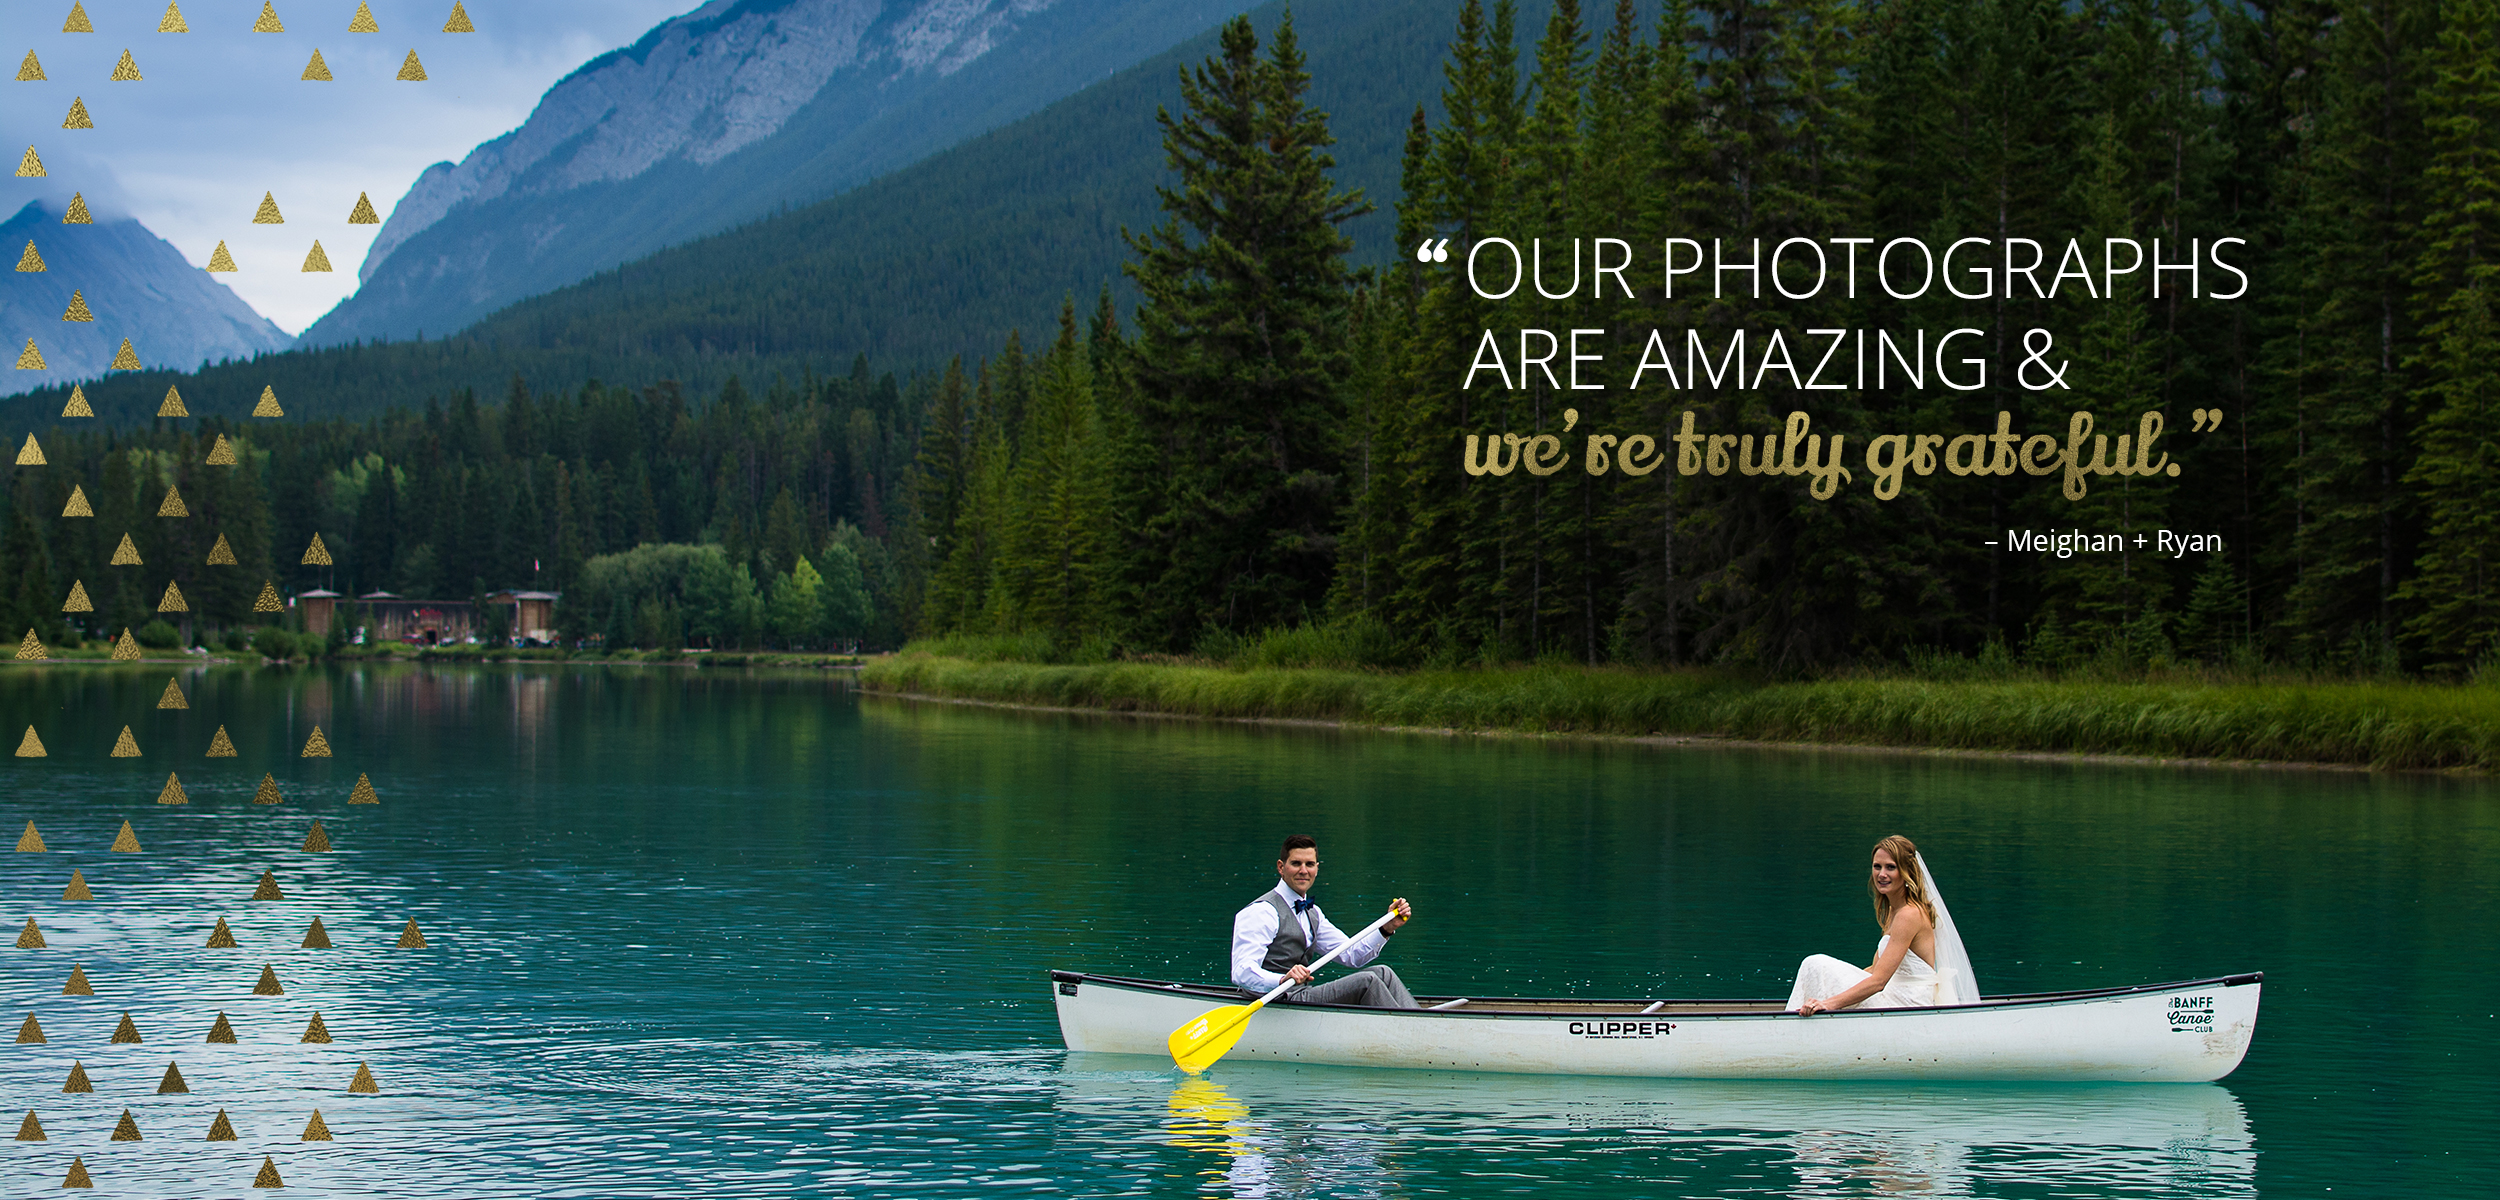 """""""Our photographs are amazing & we're truly grateful."""" - Meighan + Ryan. Photography by Kelly Skinner of Friday Design + Photography"""